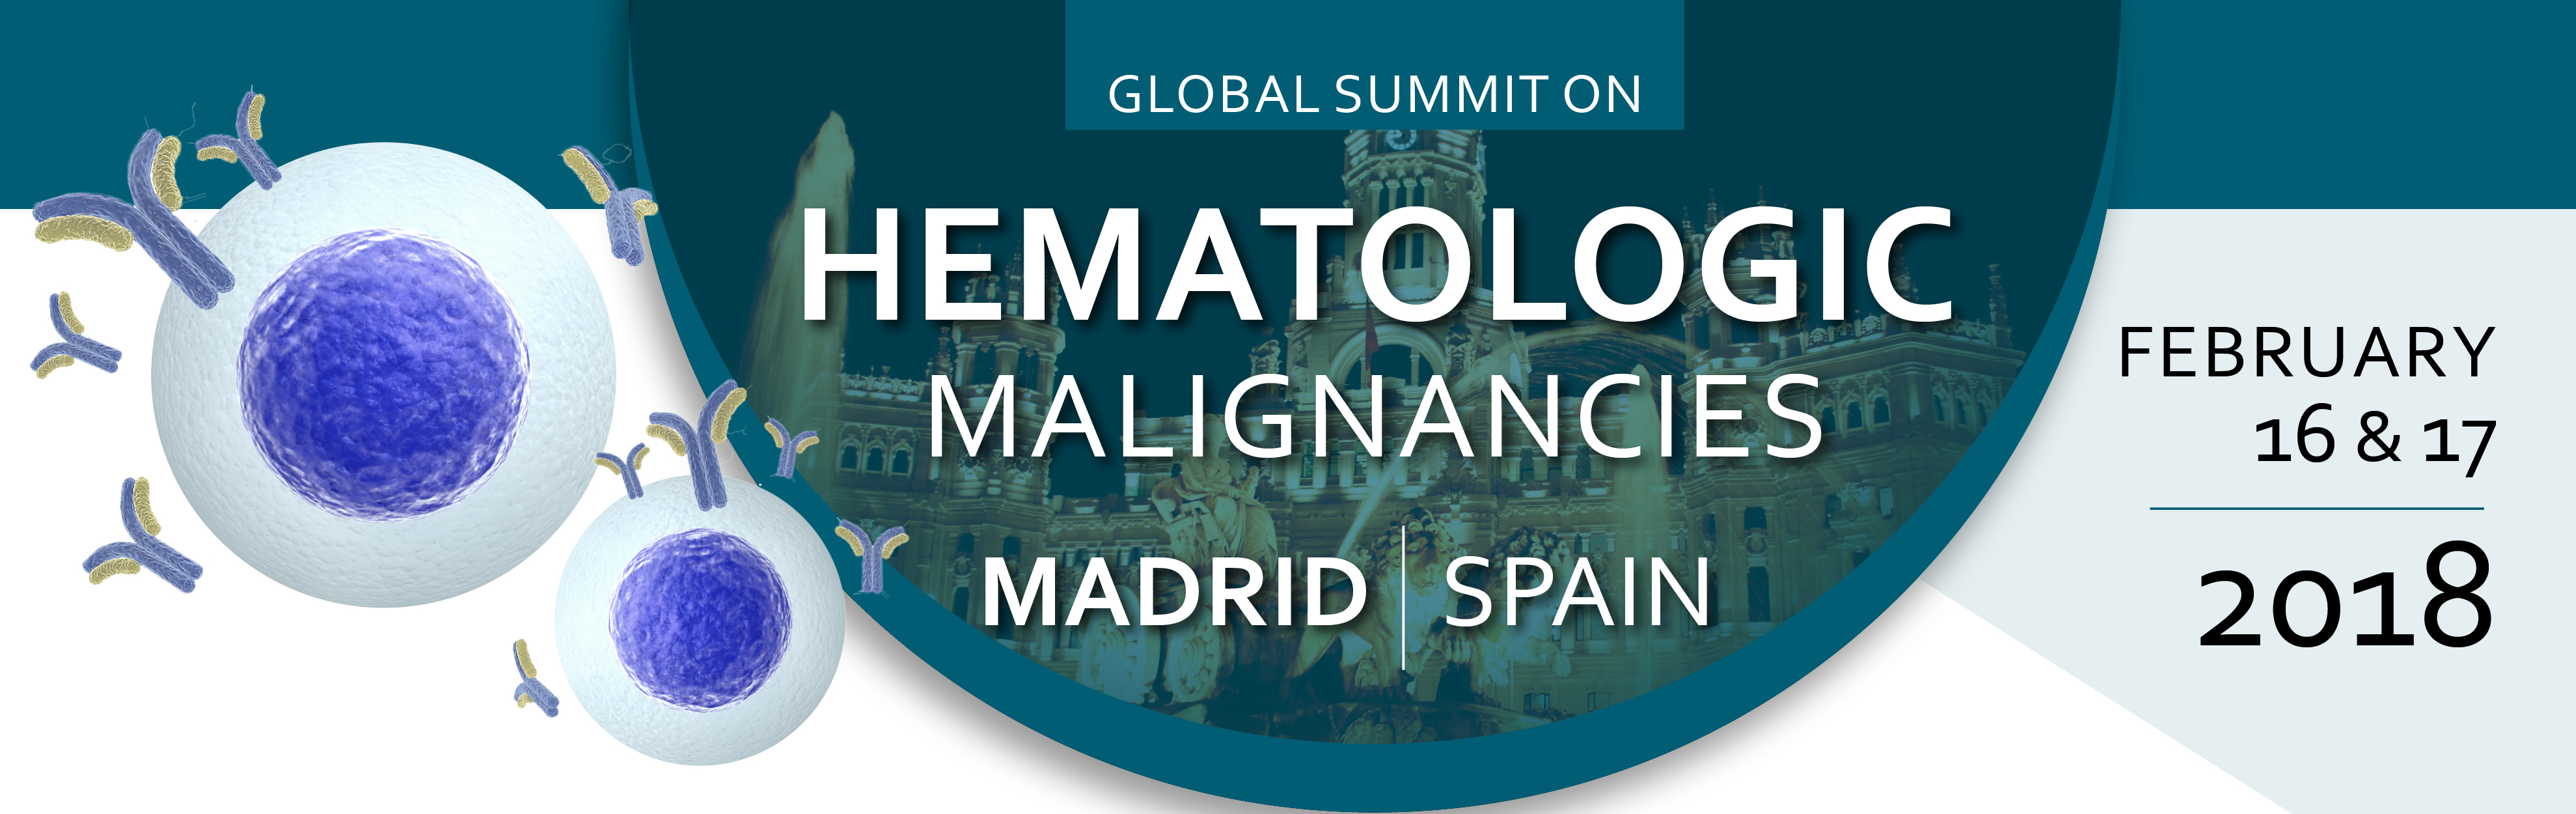 Industry Registration: Global Summit on Hematologic Malignancies - Madrid